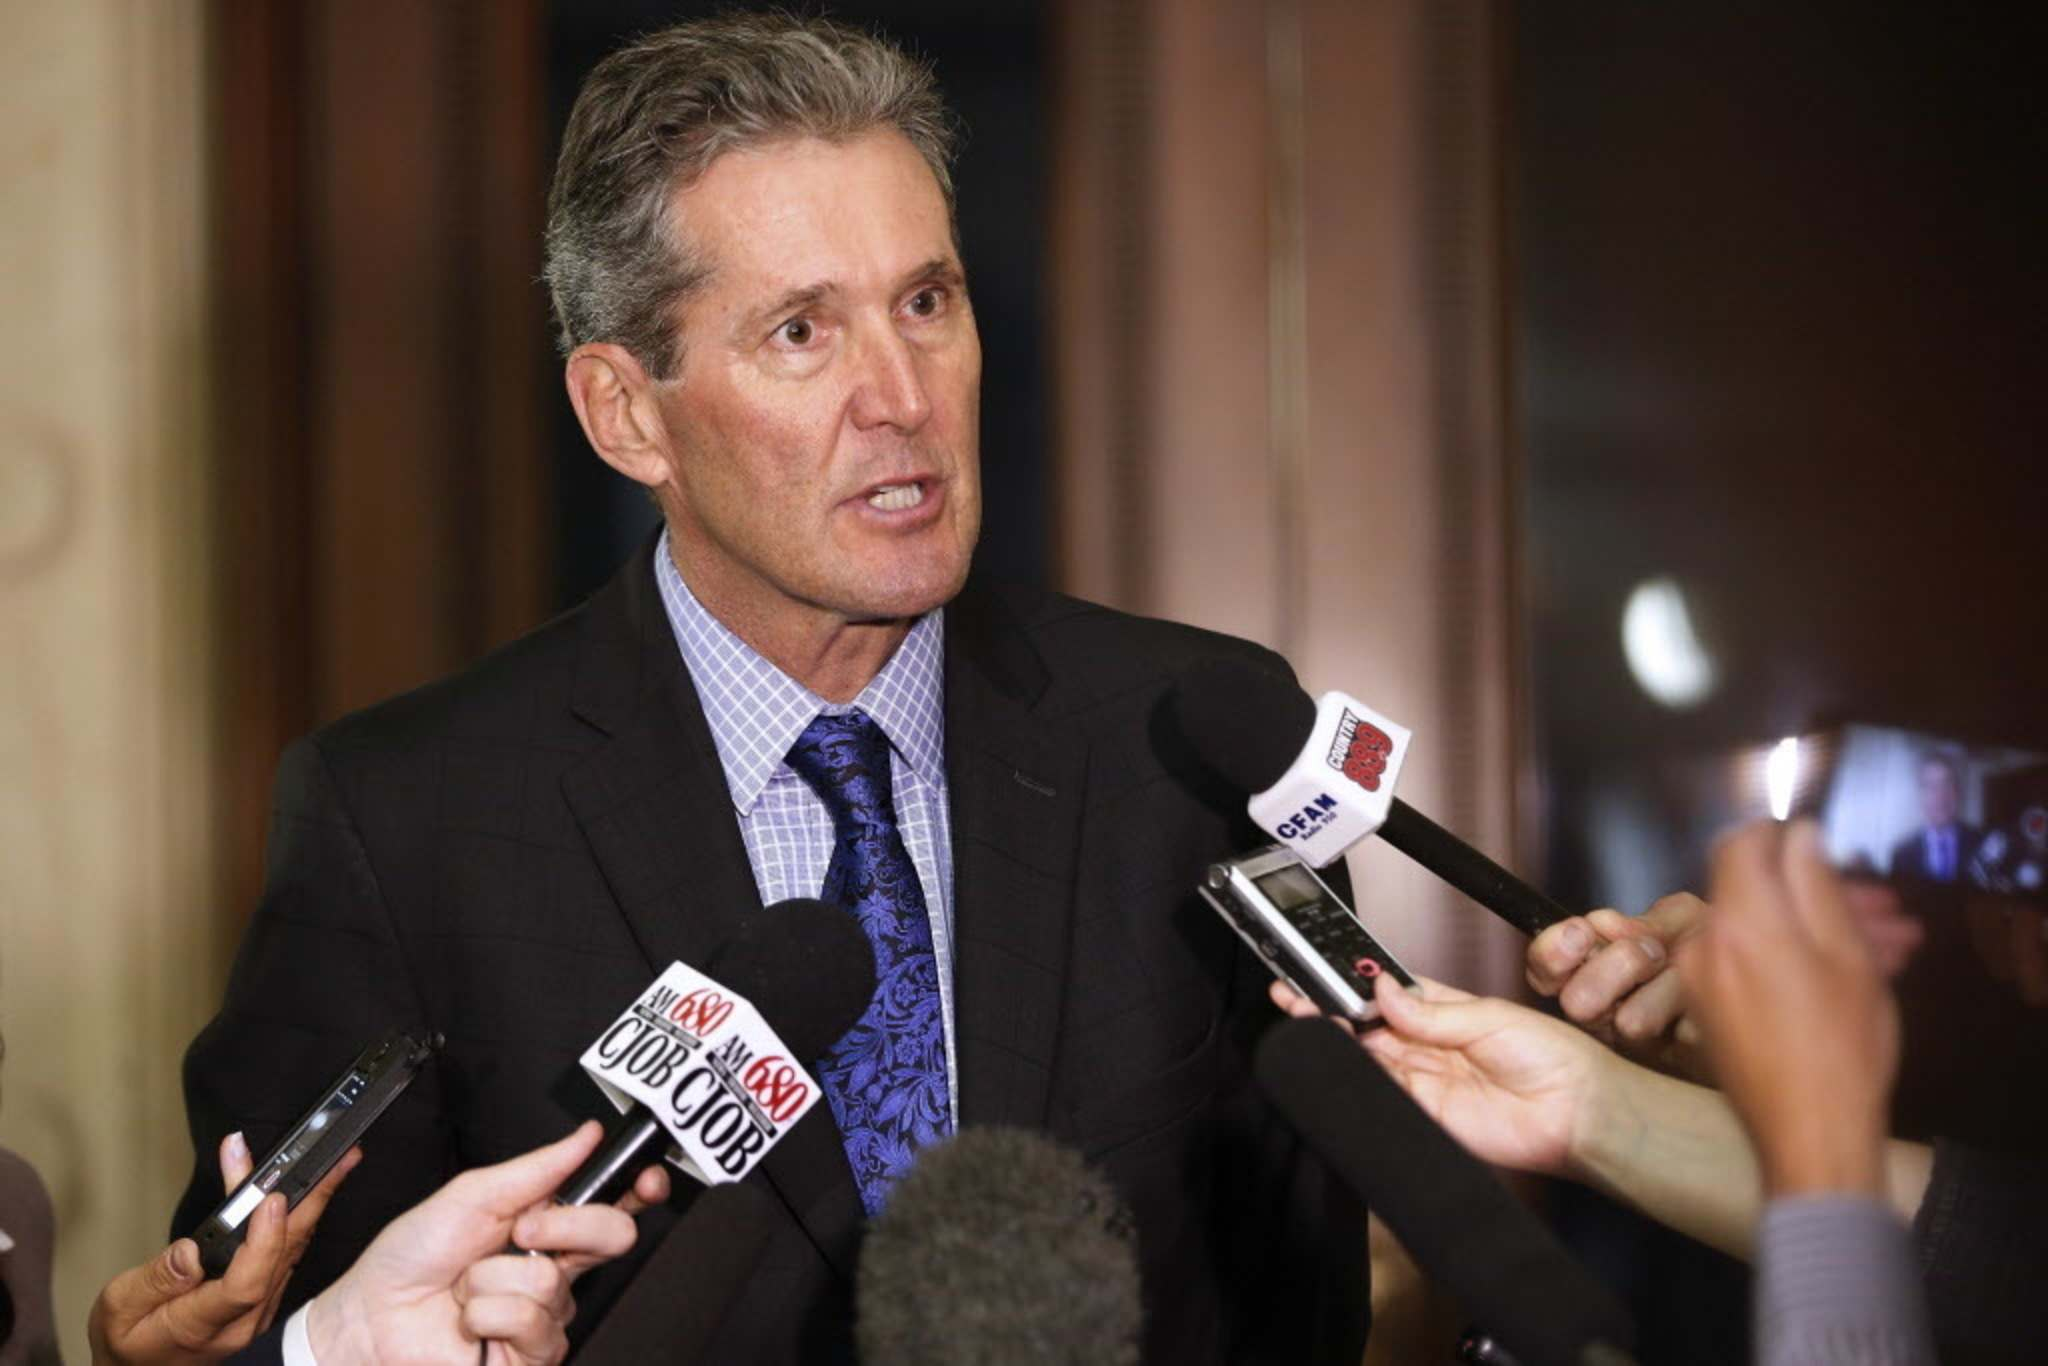 """John Woods / Winnipeg Free Press Files</p><p>For Premier Brian Pallister, austerity has gone from """"unlikely"""" to a """"must"""" as he prepares his second provincial budget.</p></p>"""